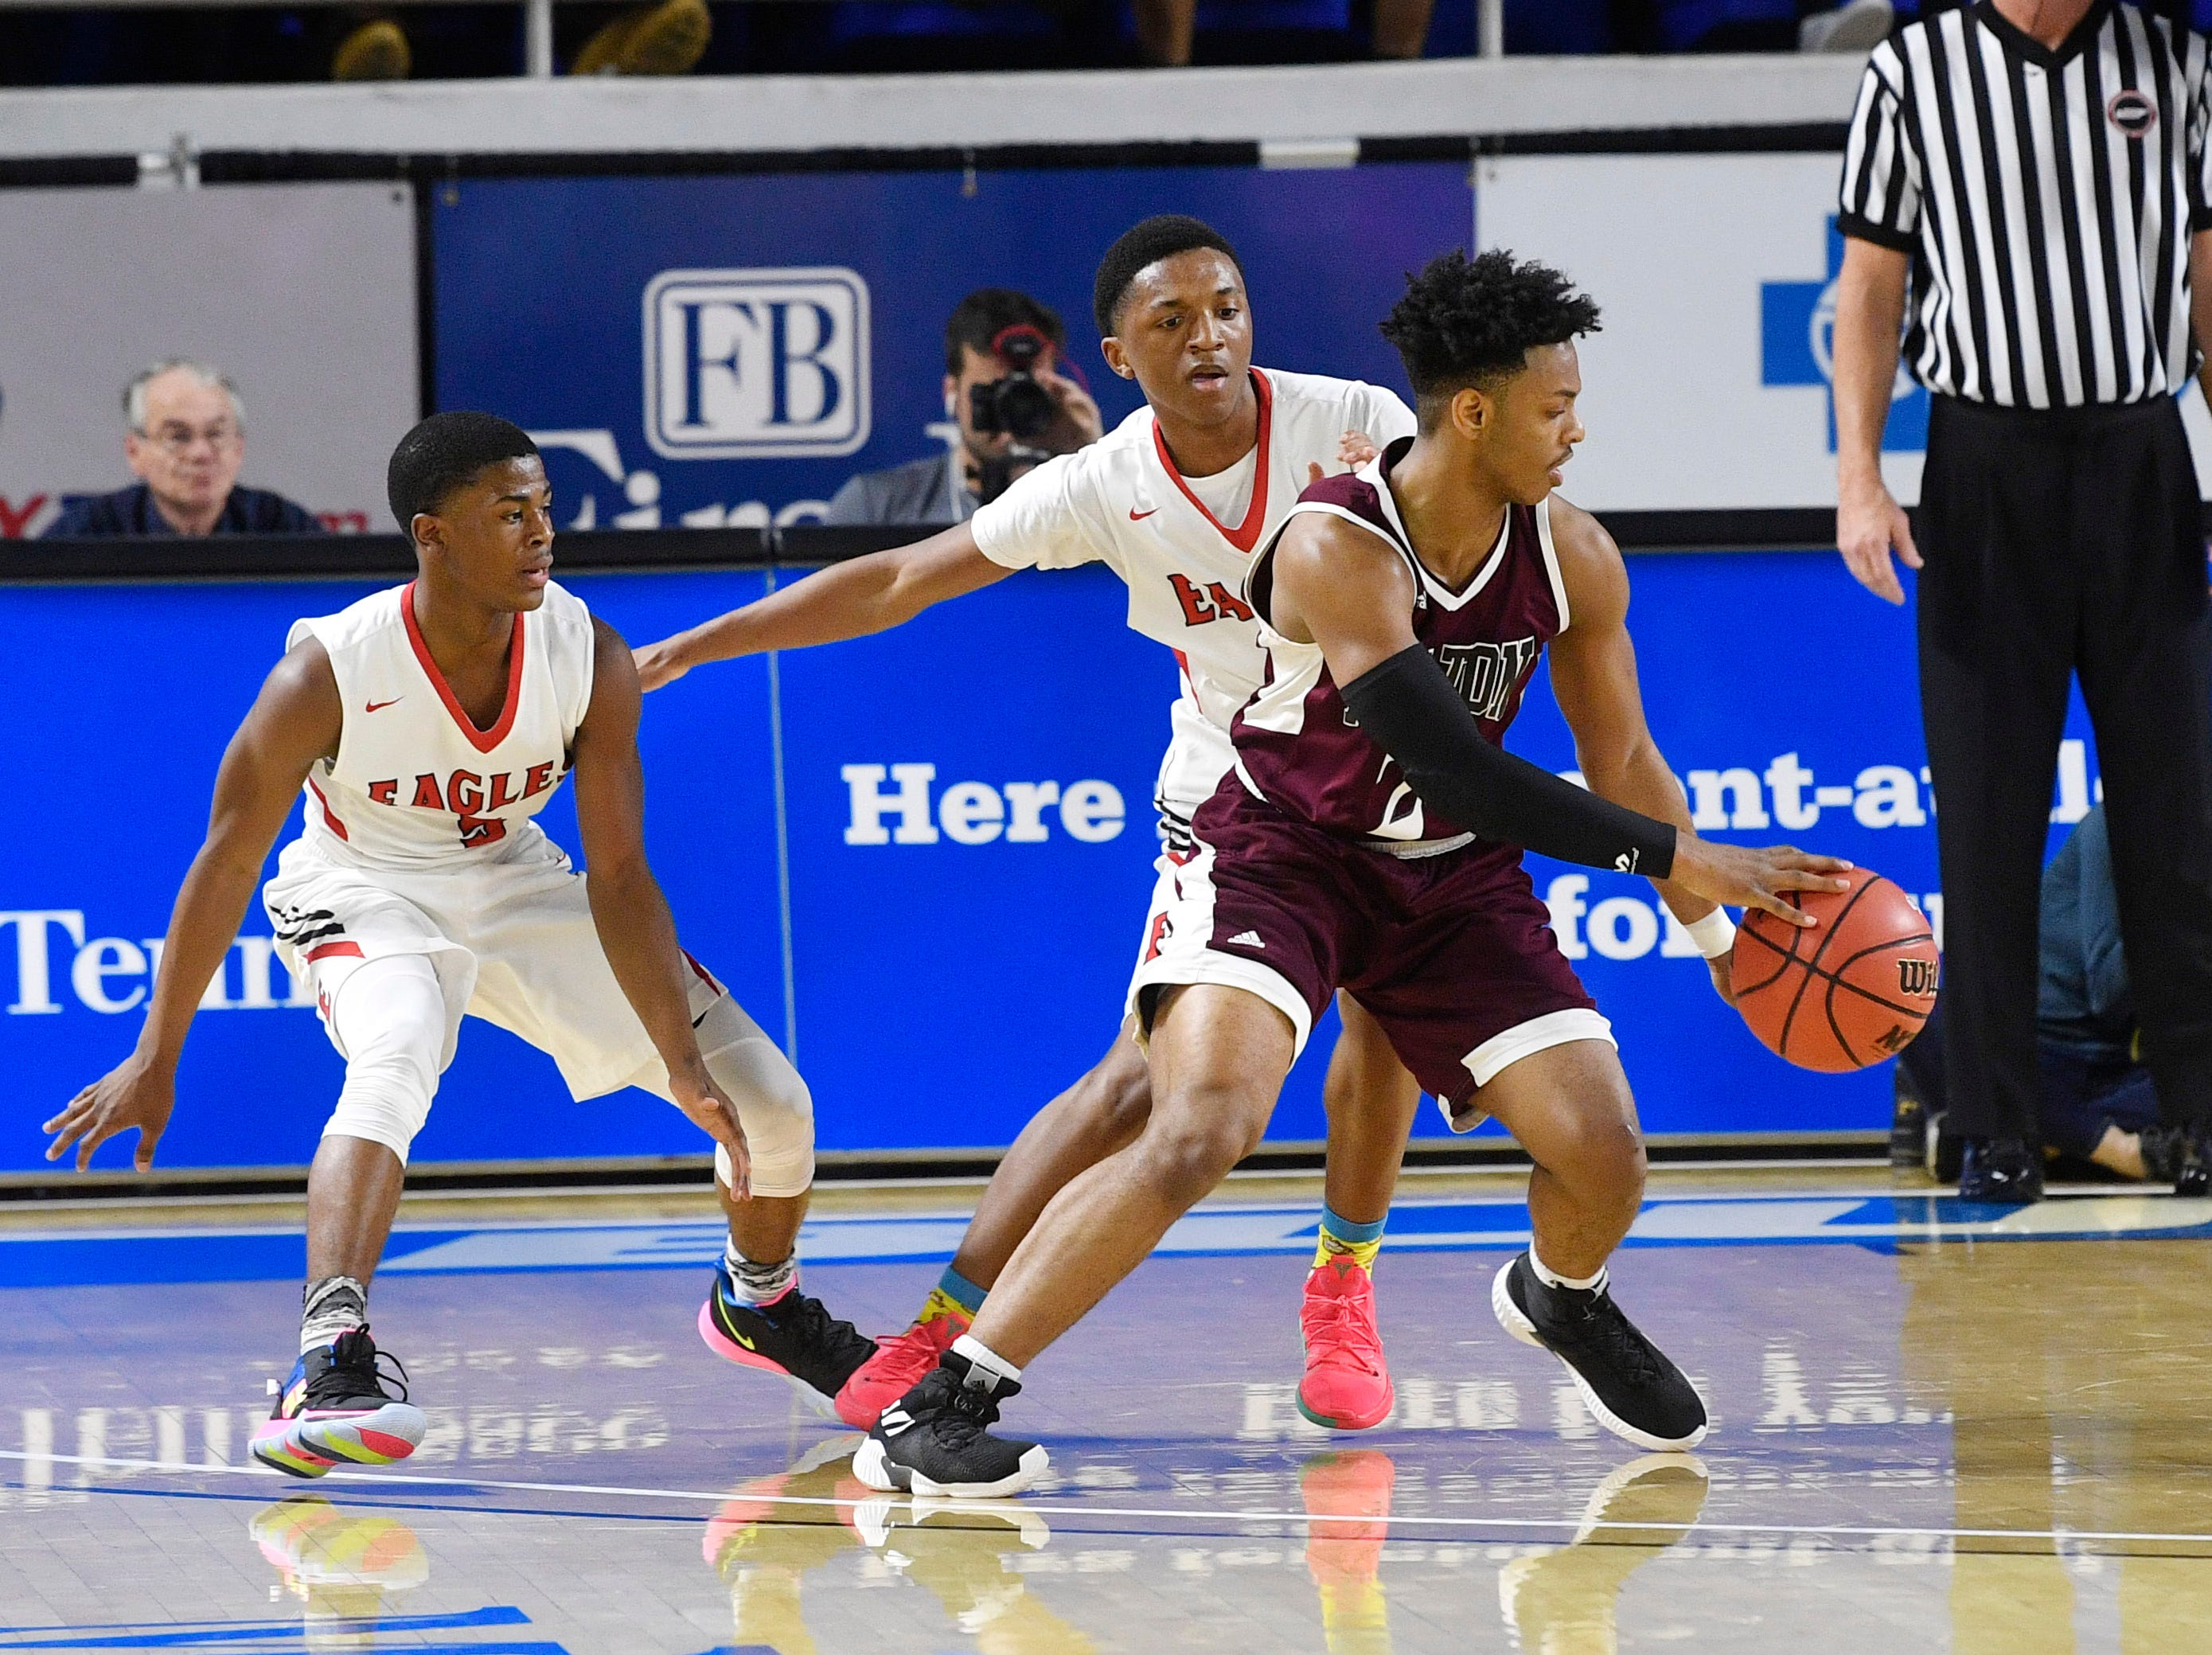 Fulton Ron Davis III (2) is surrounded by defenders as East Nashville plays Fulton in the TSSAA Class AA semifinal  Friday, March 15, 2019, in Murfreesboro, Tenn.